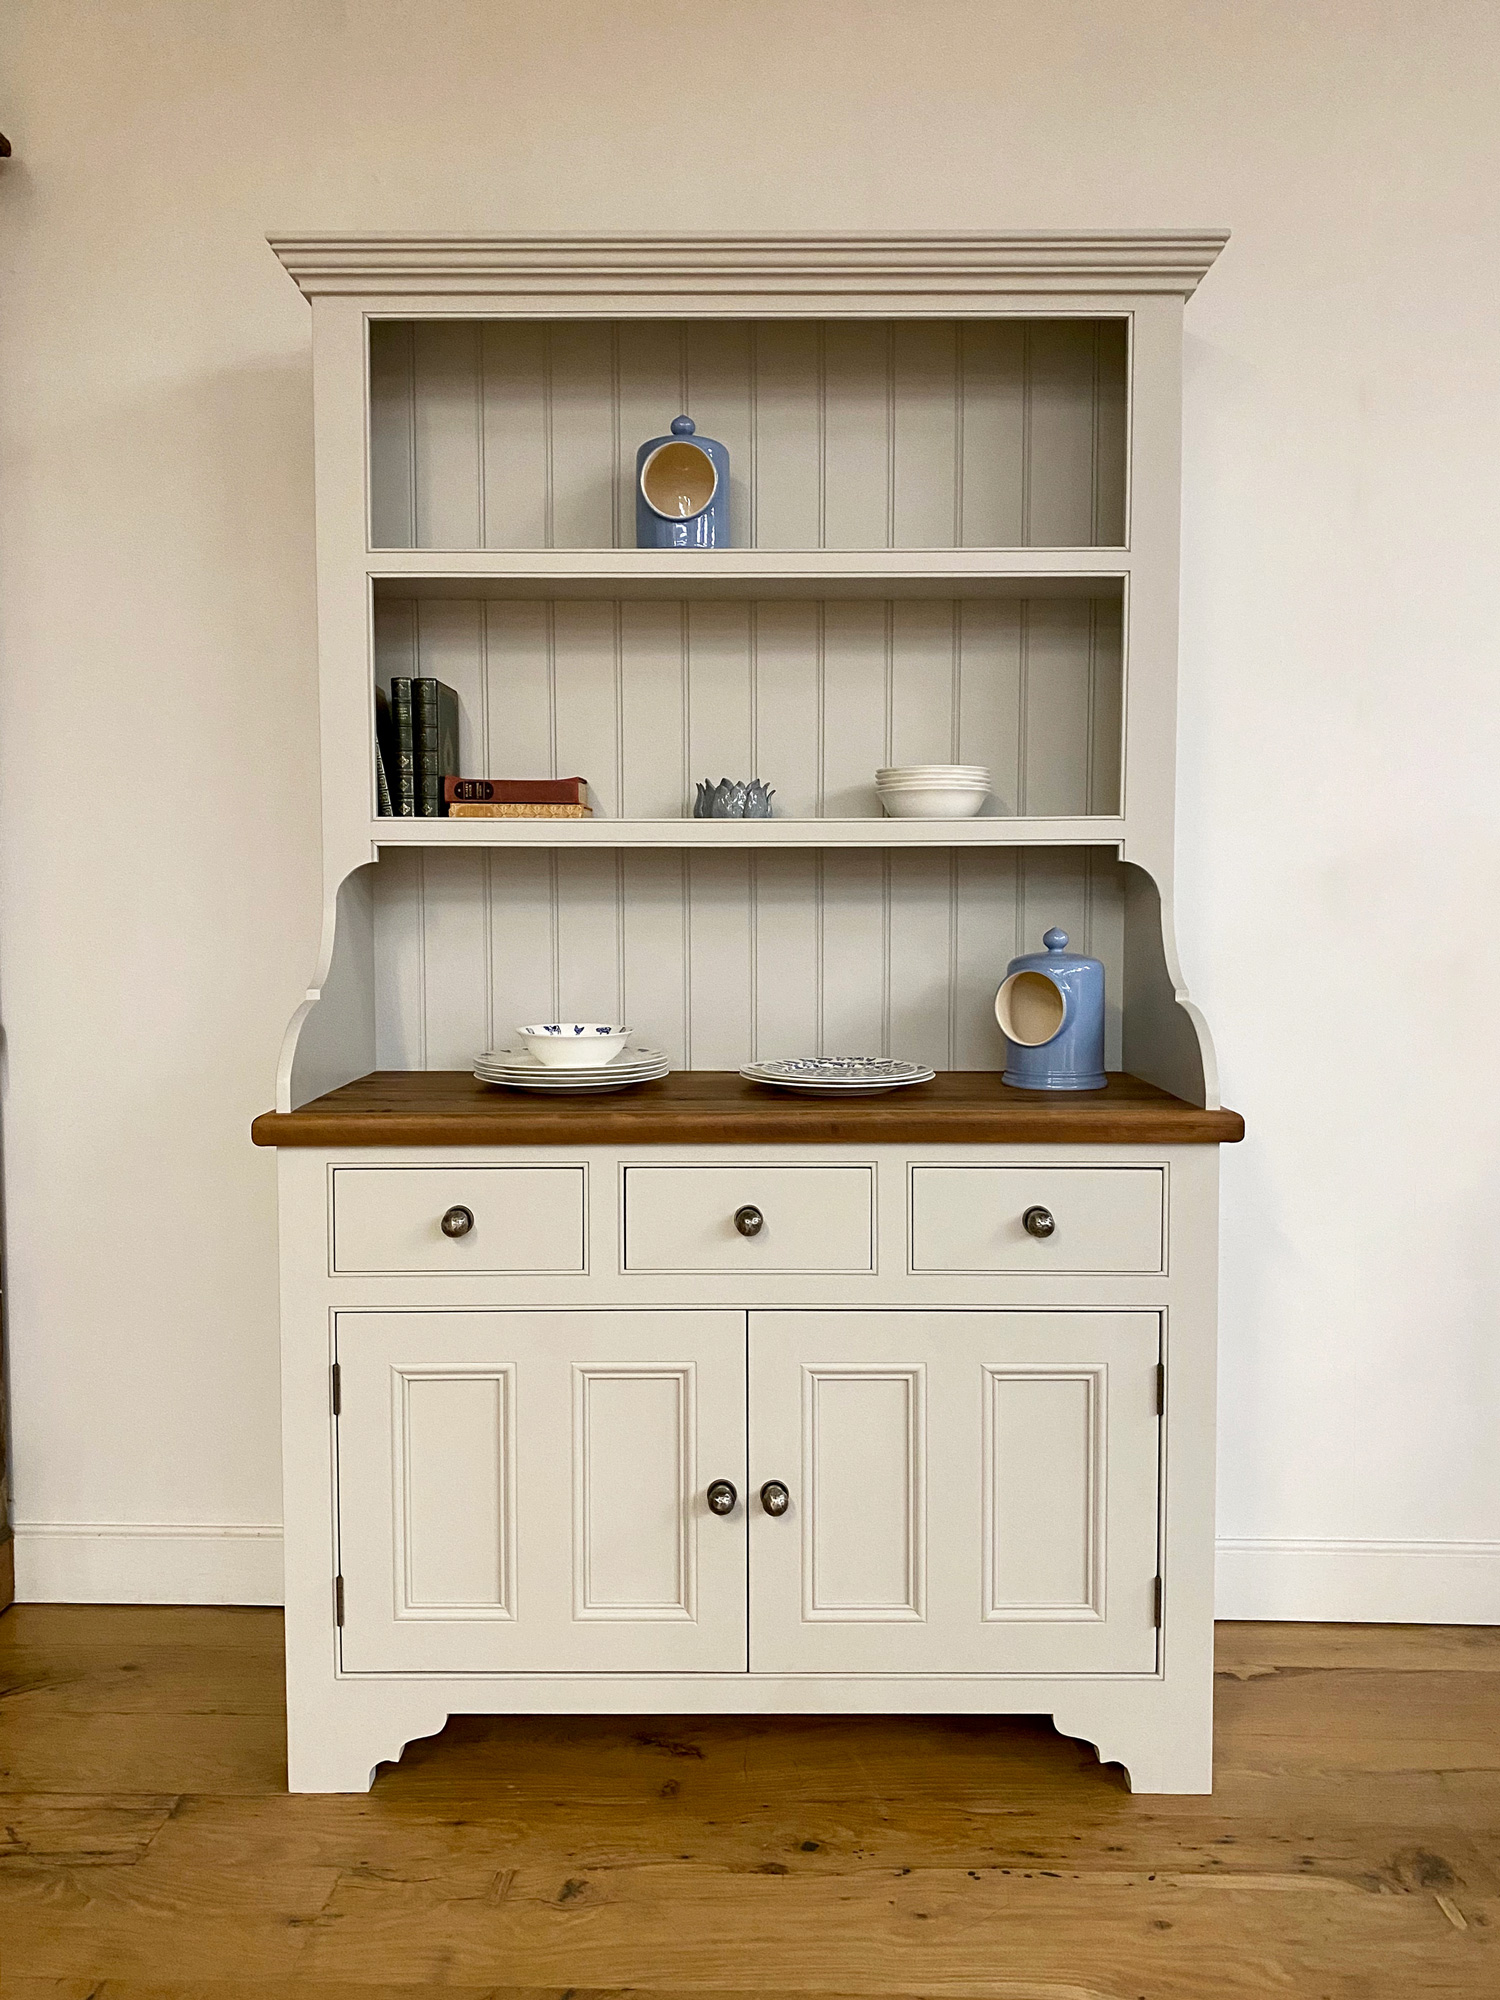 Painted Irish dresser with waxed worktop